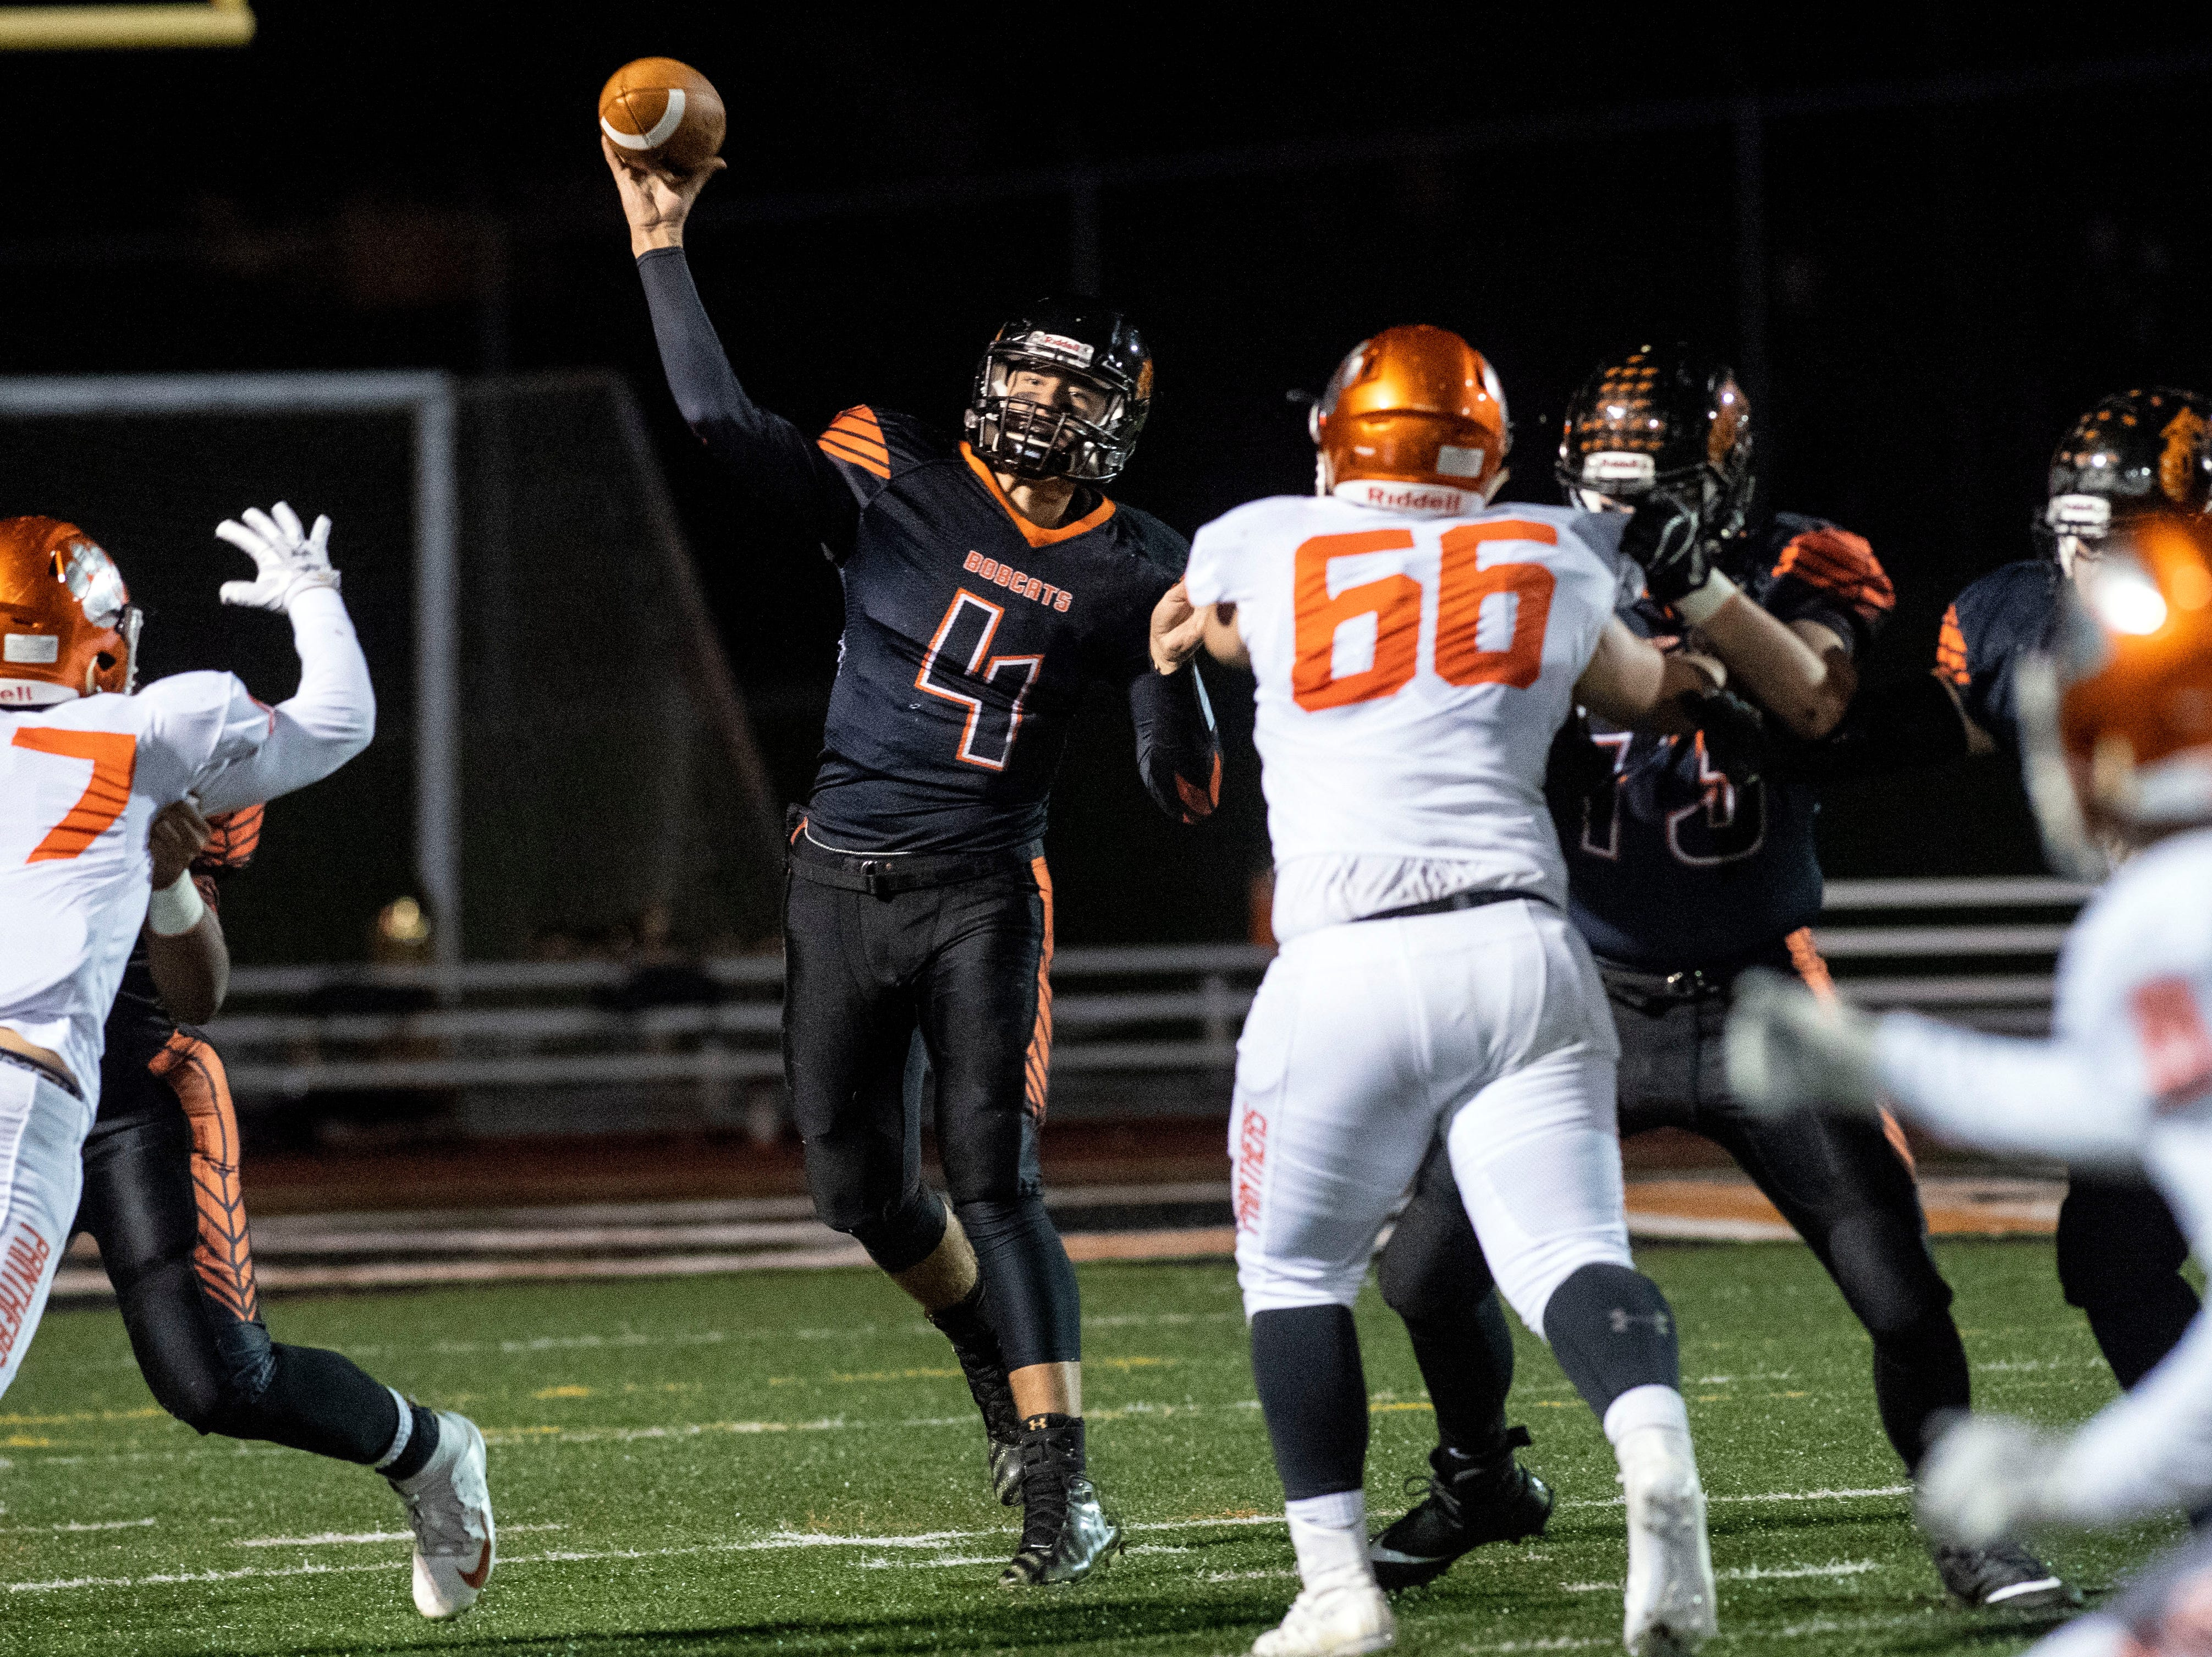 Northeastern quarterback Zech Sanderson (4) throws a pass downfield during a YAIAA Division I football game at Northeastern High School on Friday, Oct. 12, 2018. The Central York Panthers beat the Northeastern Bobcats, 44-7.